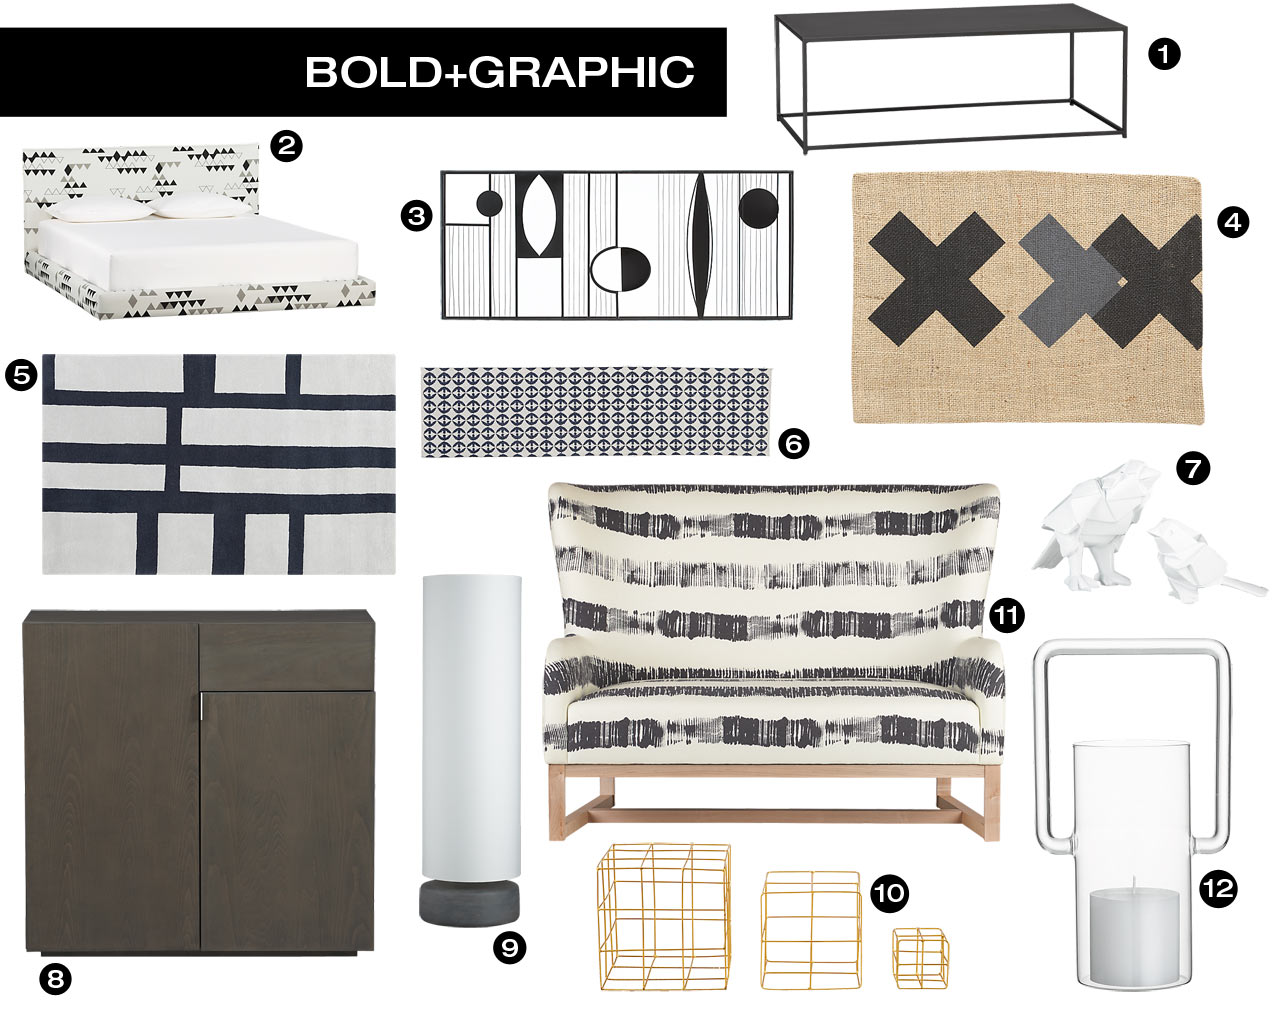 cb2-fall-2013-bold-graphic-home-decor